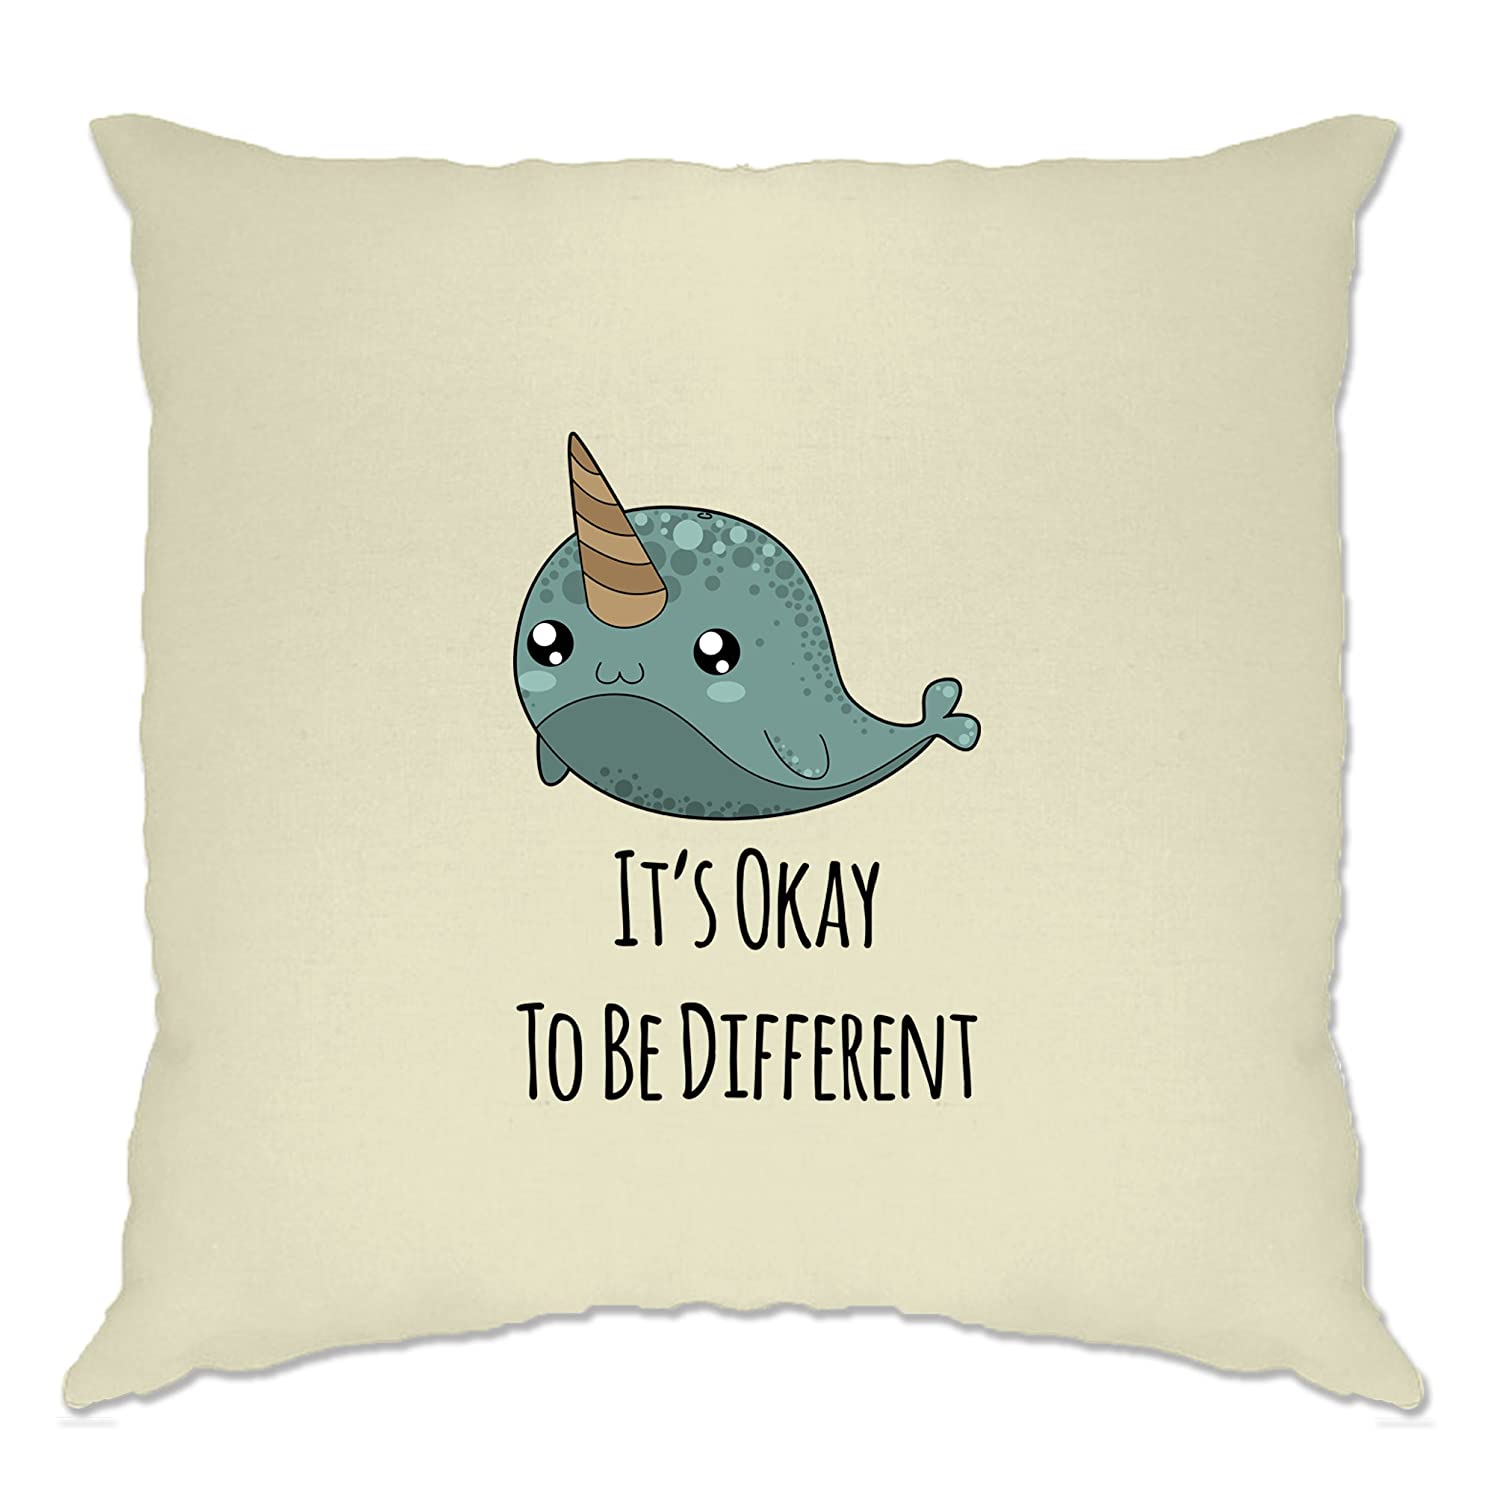 Amazon.com: Tim And Ted Cute Narwhal Cushion Cover Its Okay To Be Different Slogan White One Size: Home & Kitchen